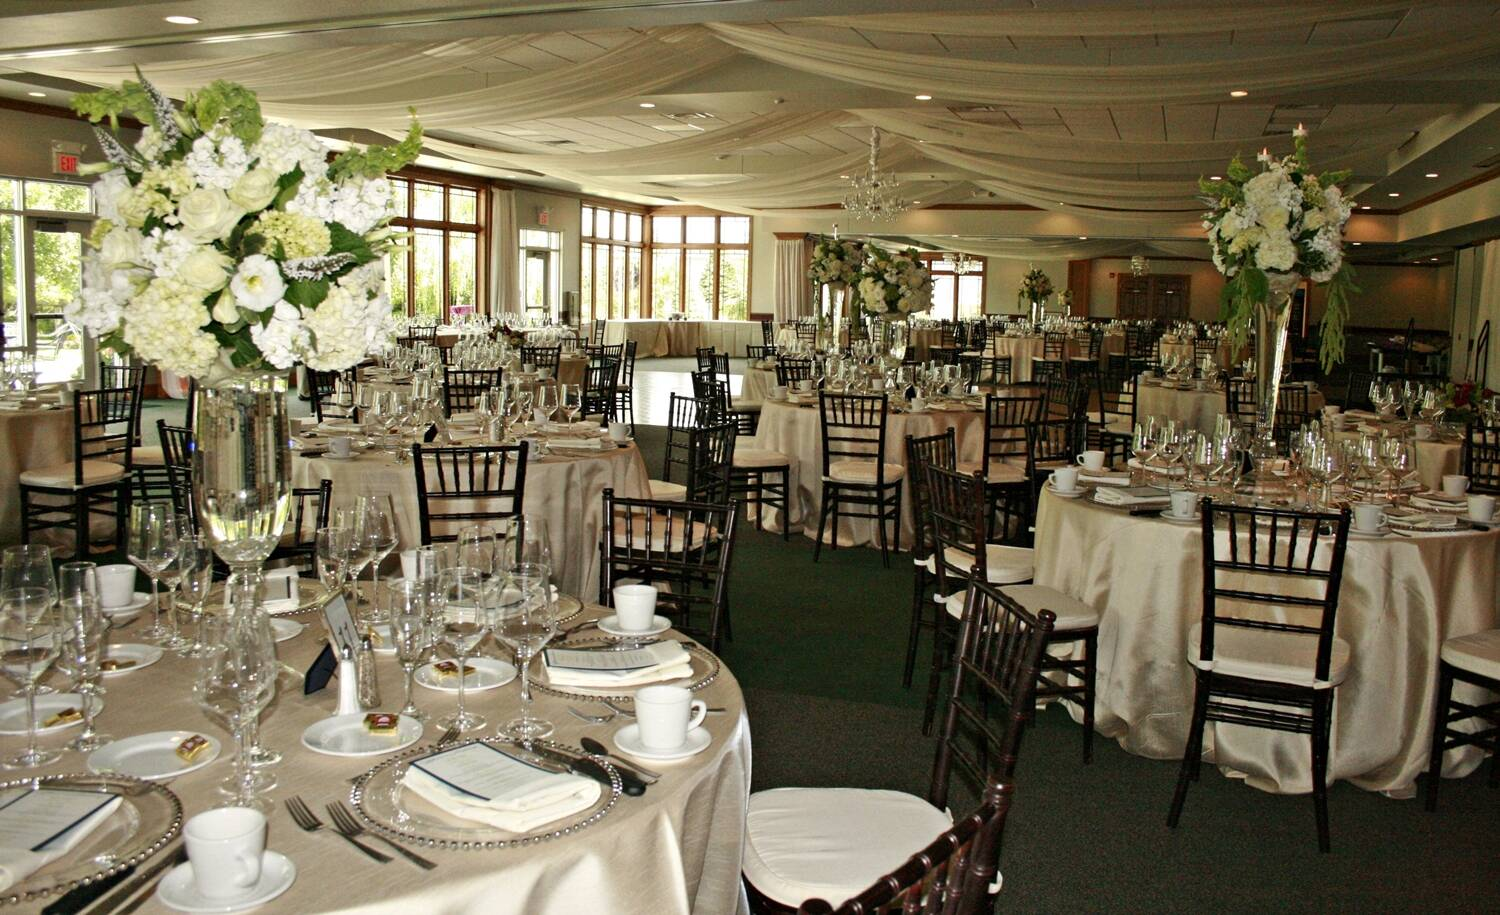 The Florian Gardens Conference Center Facility Rental